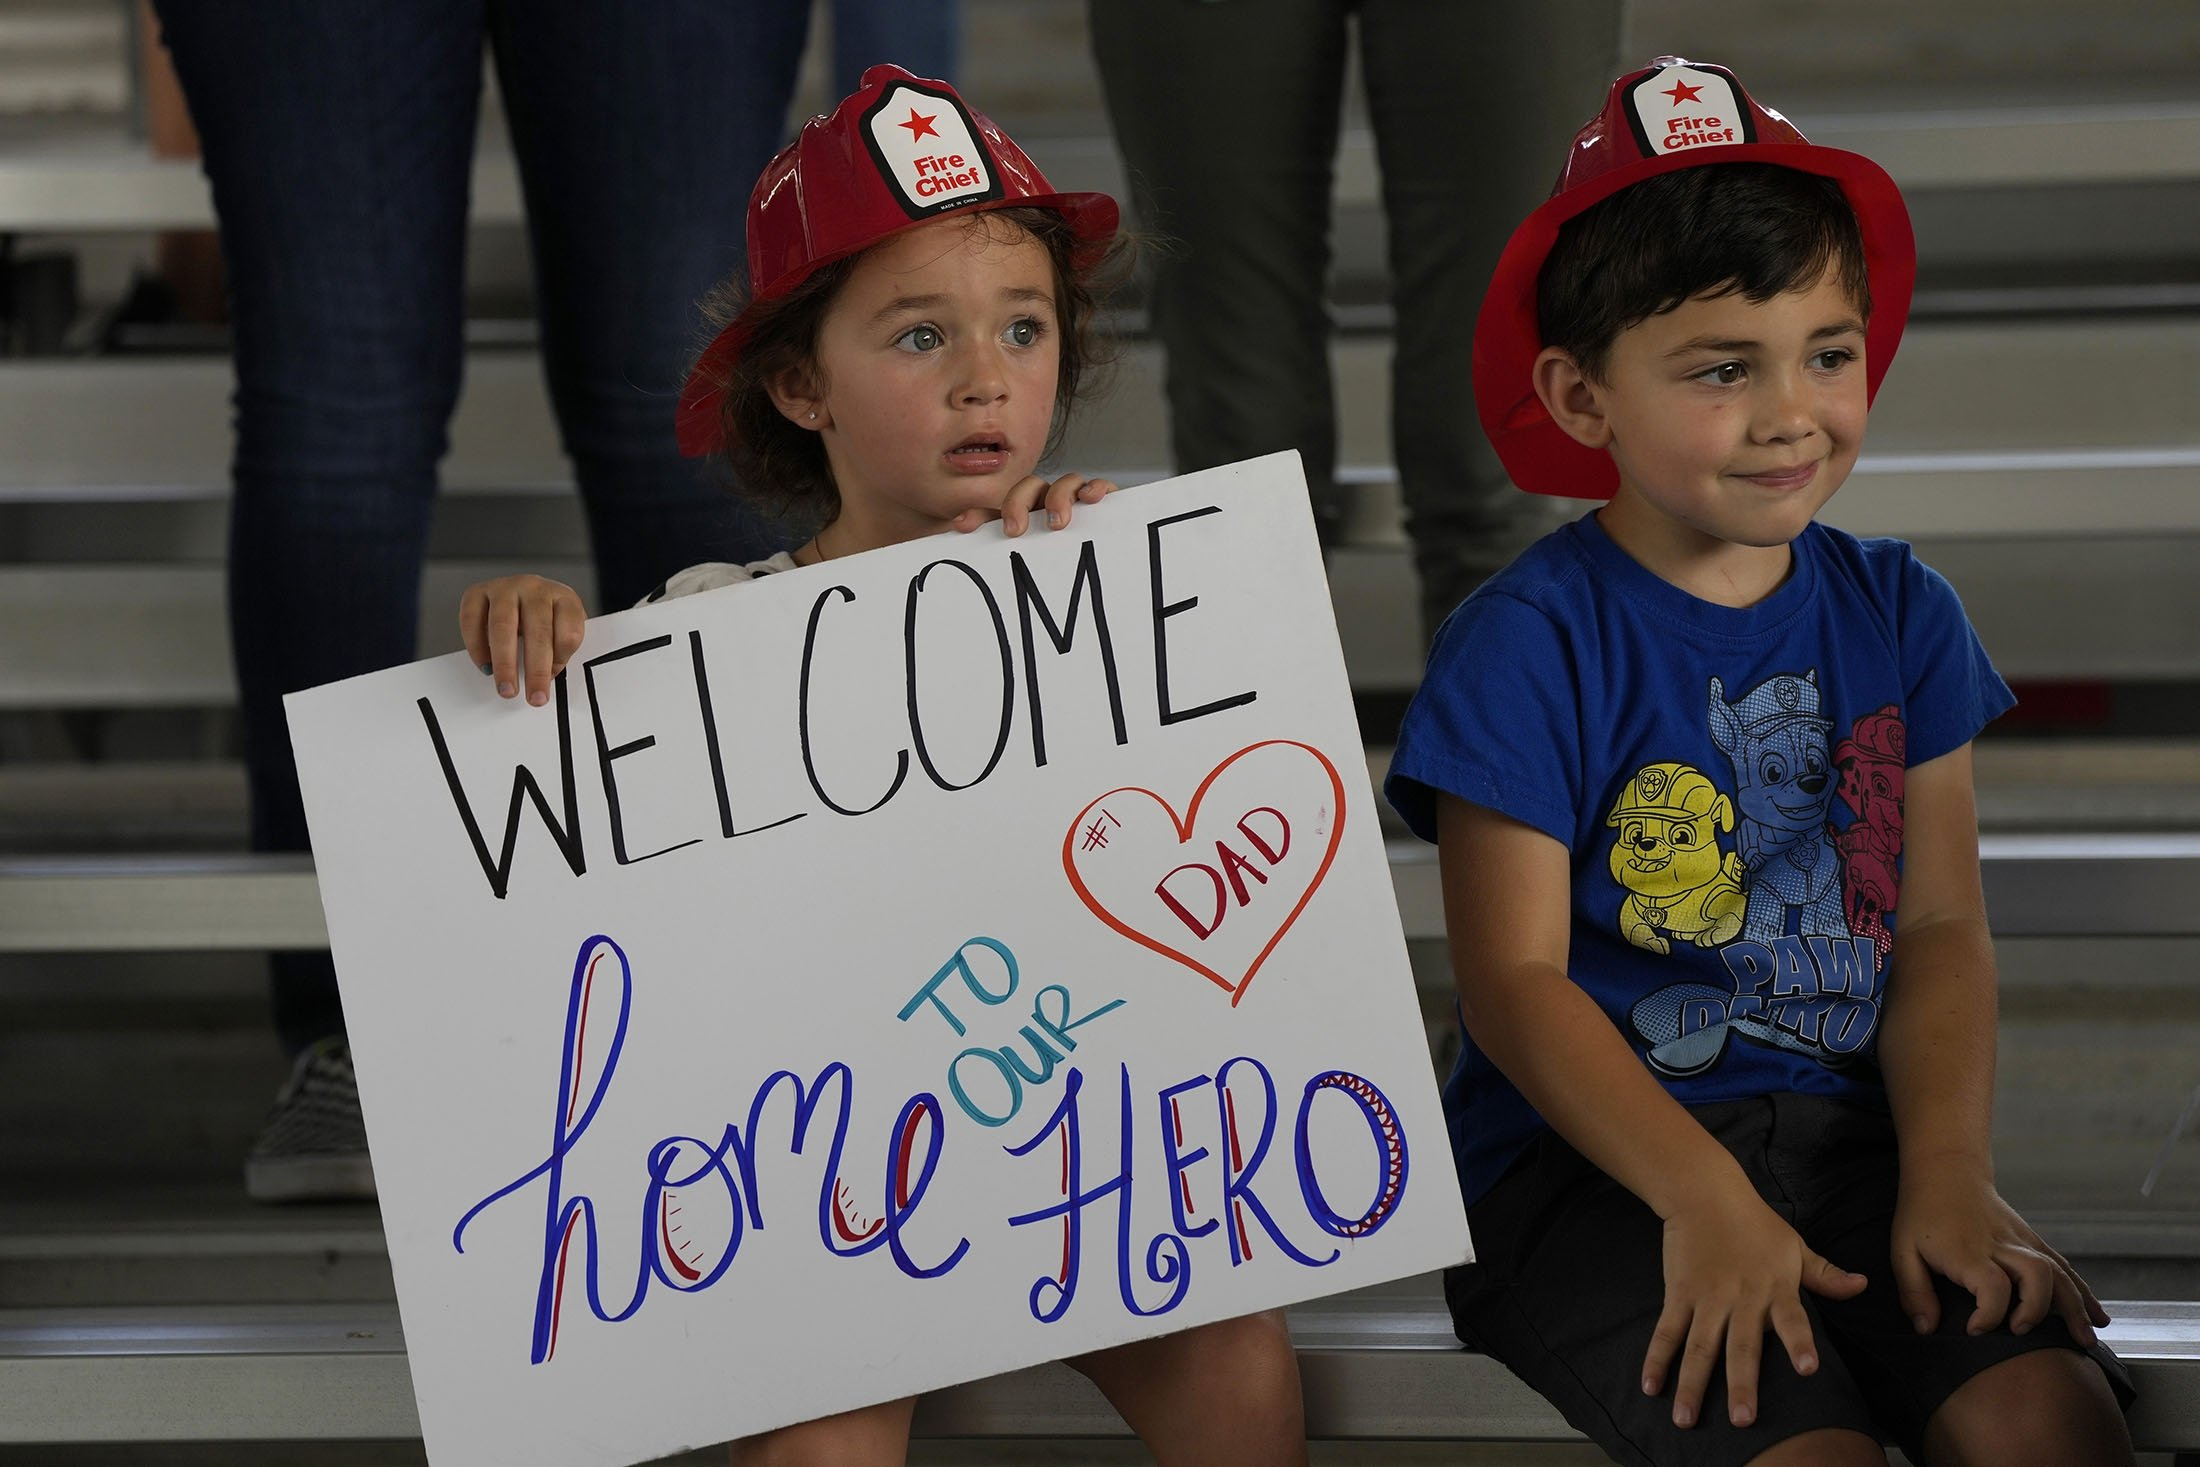 Isabella, 3, and Eric, 4, wait to welcome home their father, Captain Eric Hernandez, in Florida, U.S., July 23, 2021. (AP Photo)